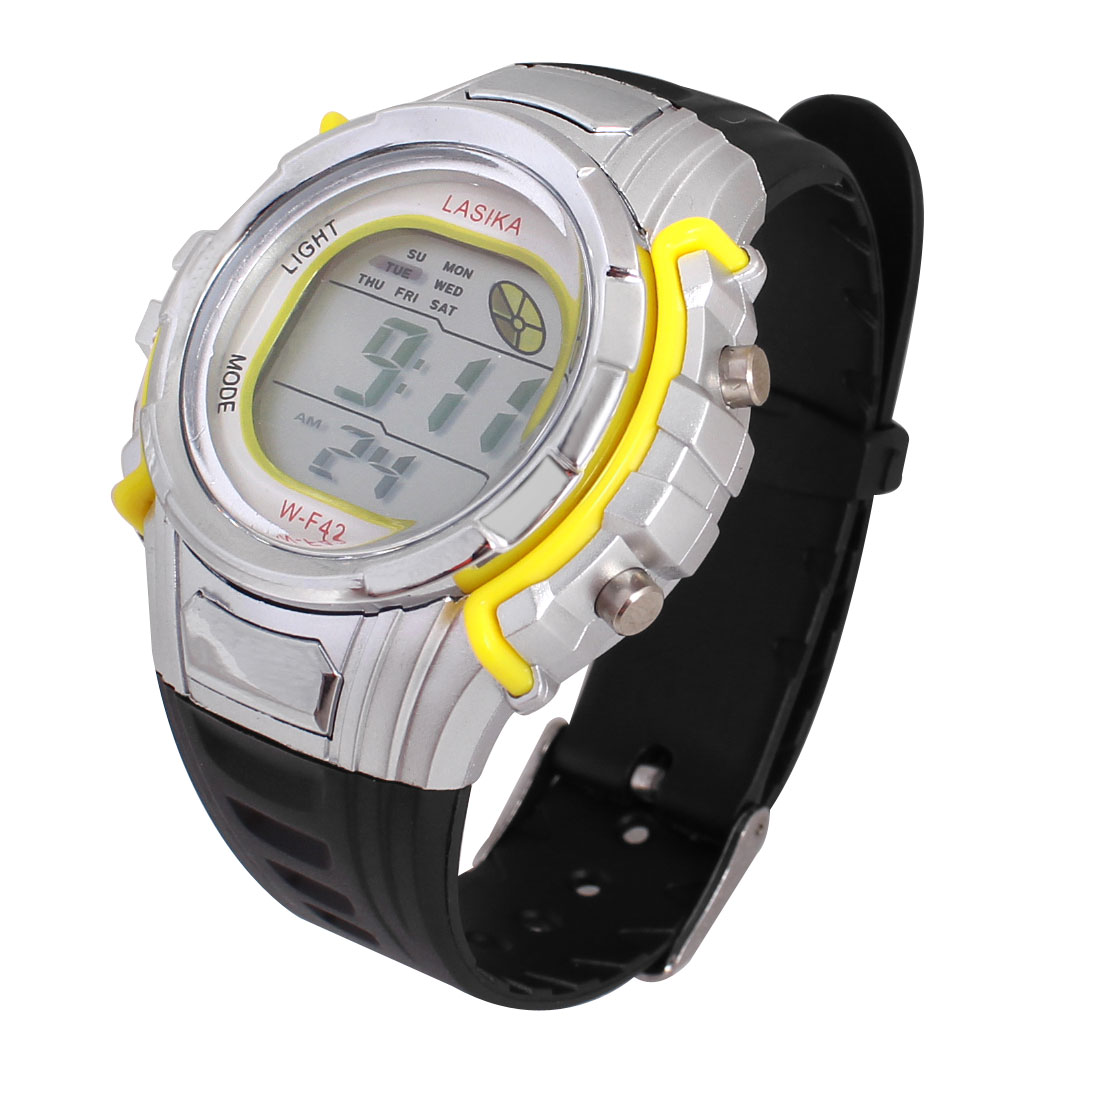 Kids Adjustable Band Stopwatch Alarm Clock Sports Wrist Watch Yellow